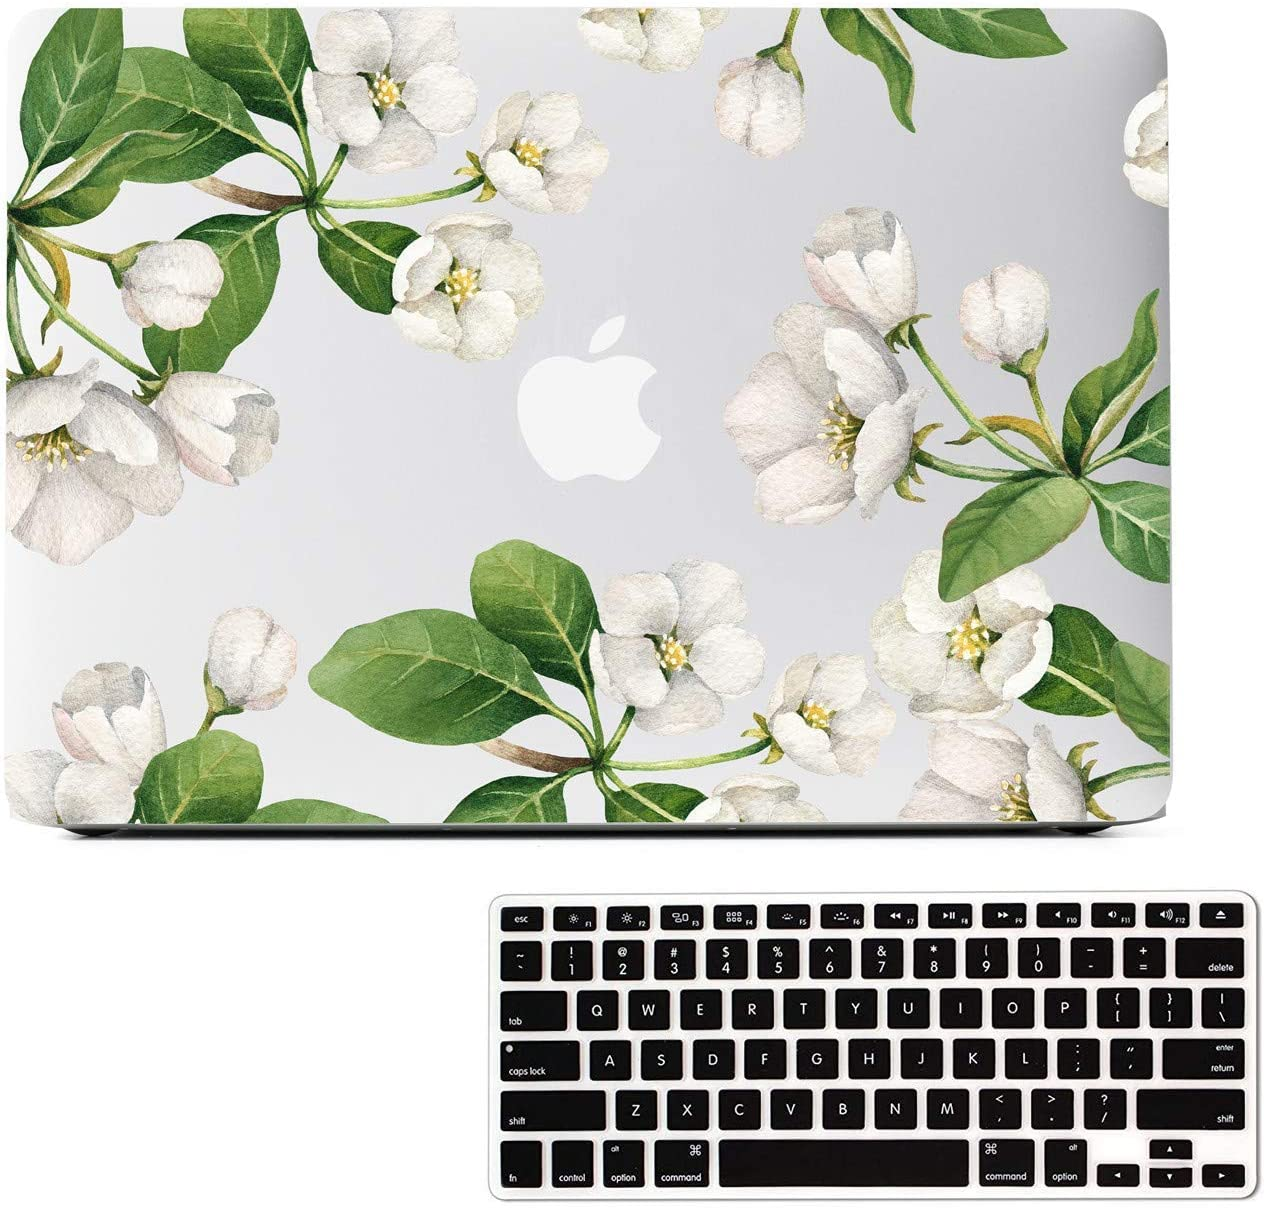 MacBook Air 13.3 Inch Case Flower, White Apple Flower Clear Case, Matte Soft-Touch Hard Shell Case Cover Model A1466 A1369 with Keyboard Cover 2010-2017